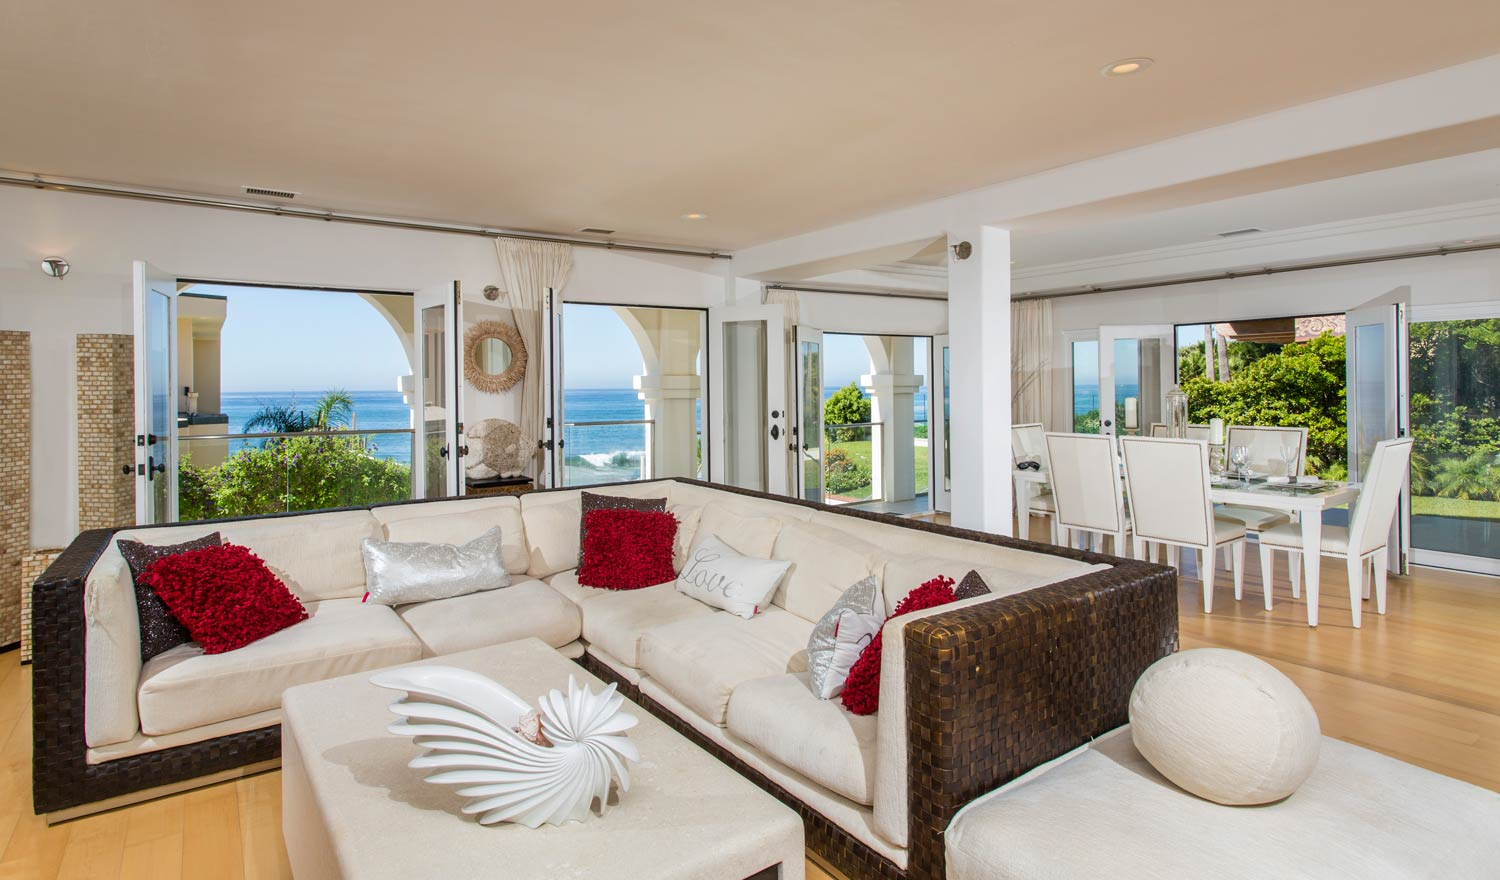 The home features French doors throughout to showcase the exceptional ocean views and create an open and airy feeling.